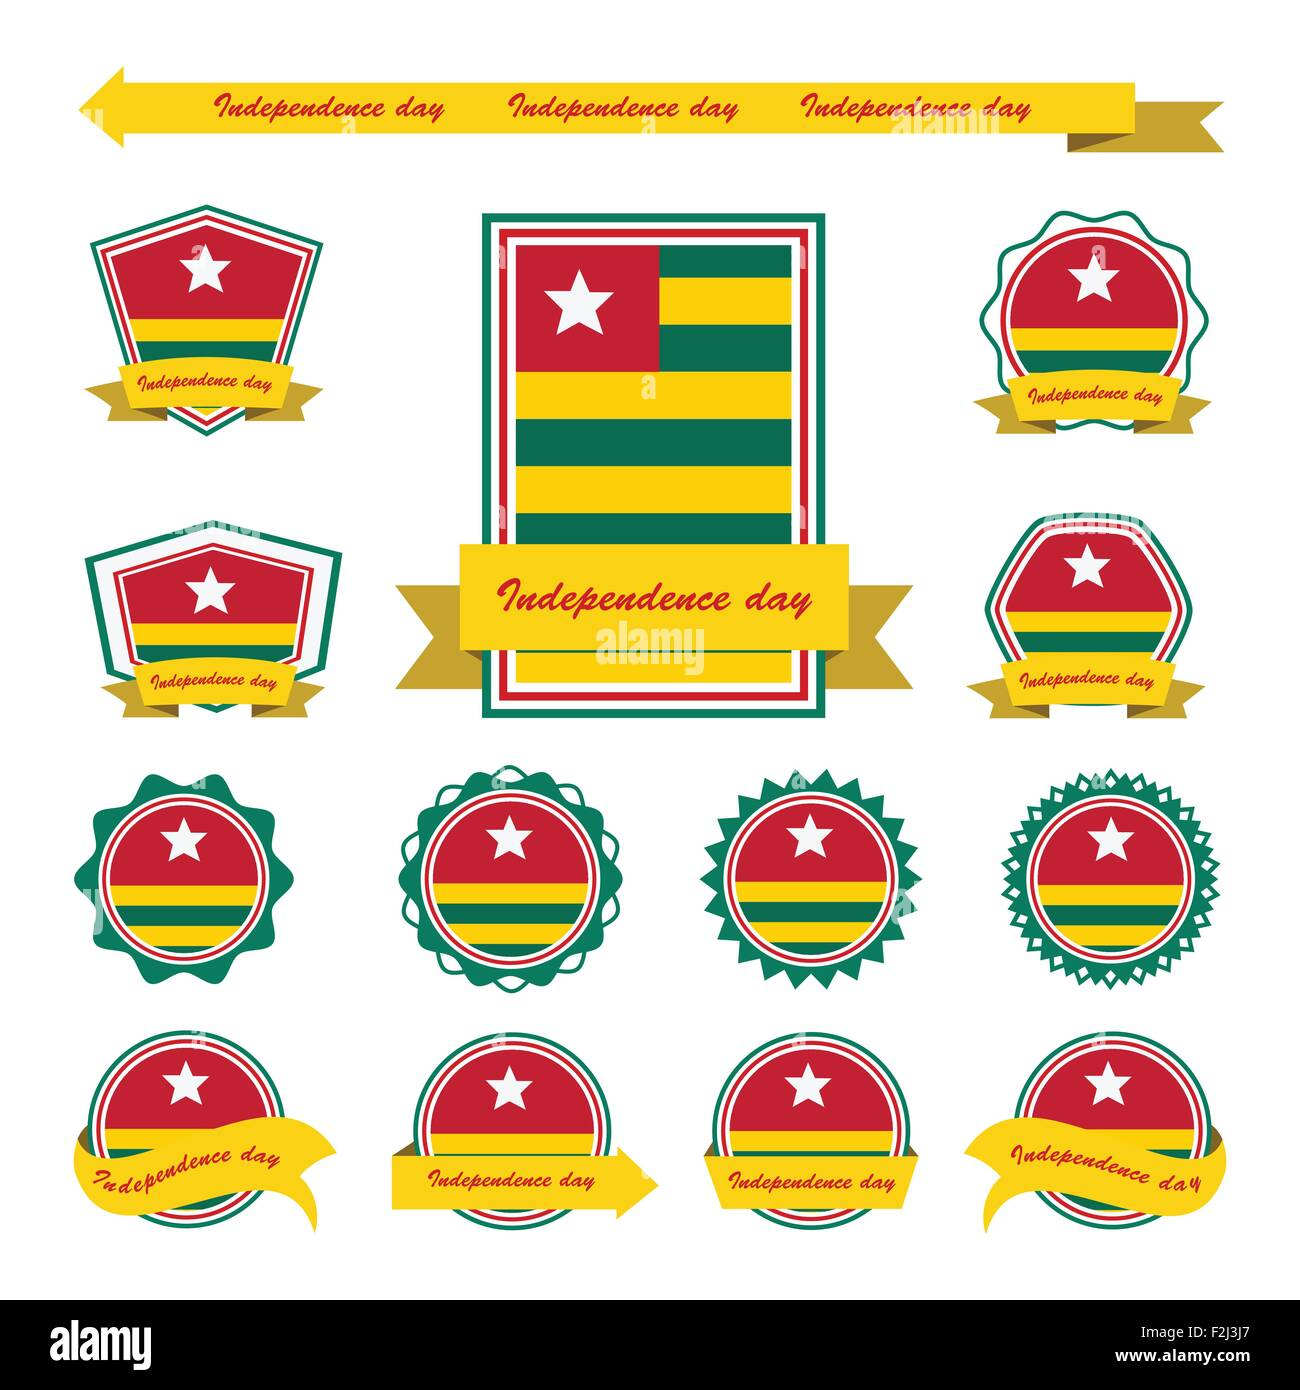 togo independence day flags infographic design - Stock Vector